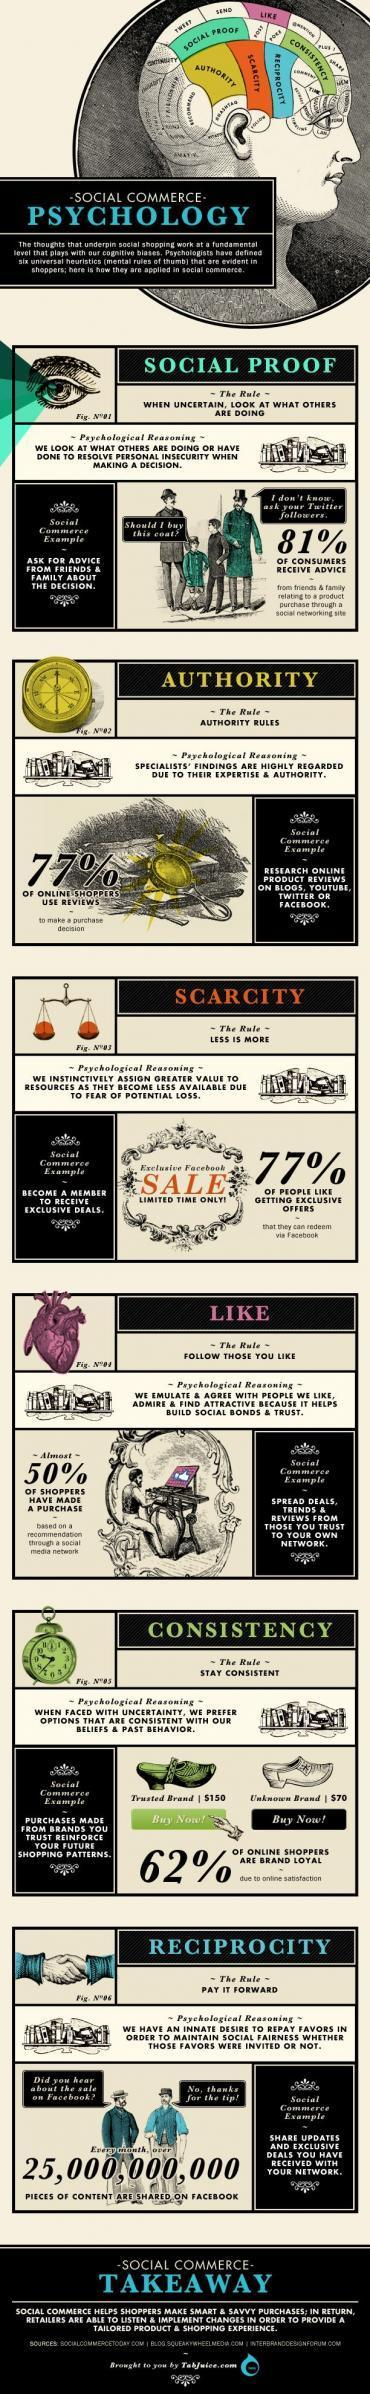 Infographic: Six psychological theories of social commerce | MyCustomer | curation | Scoop.it